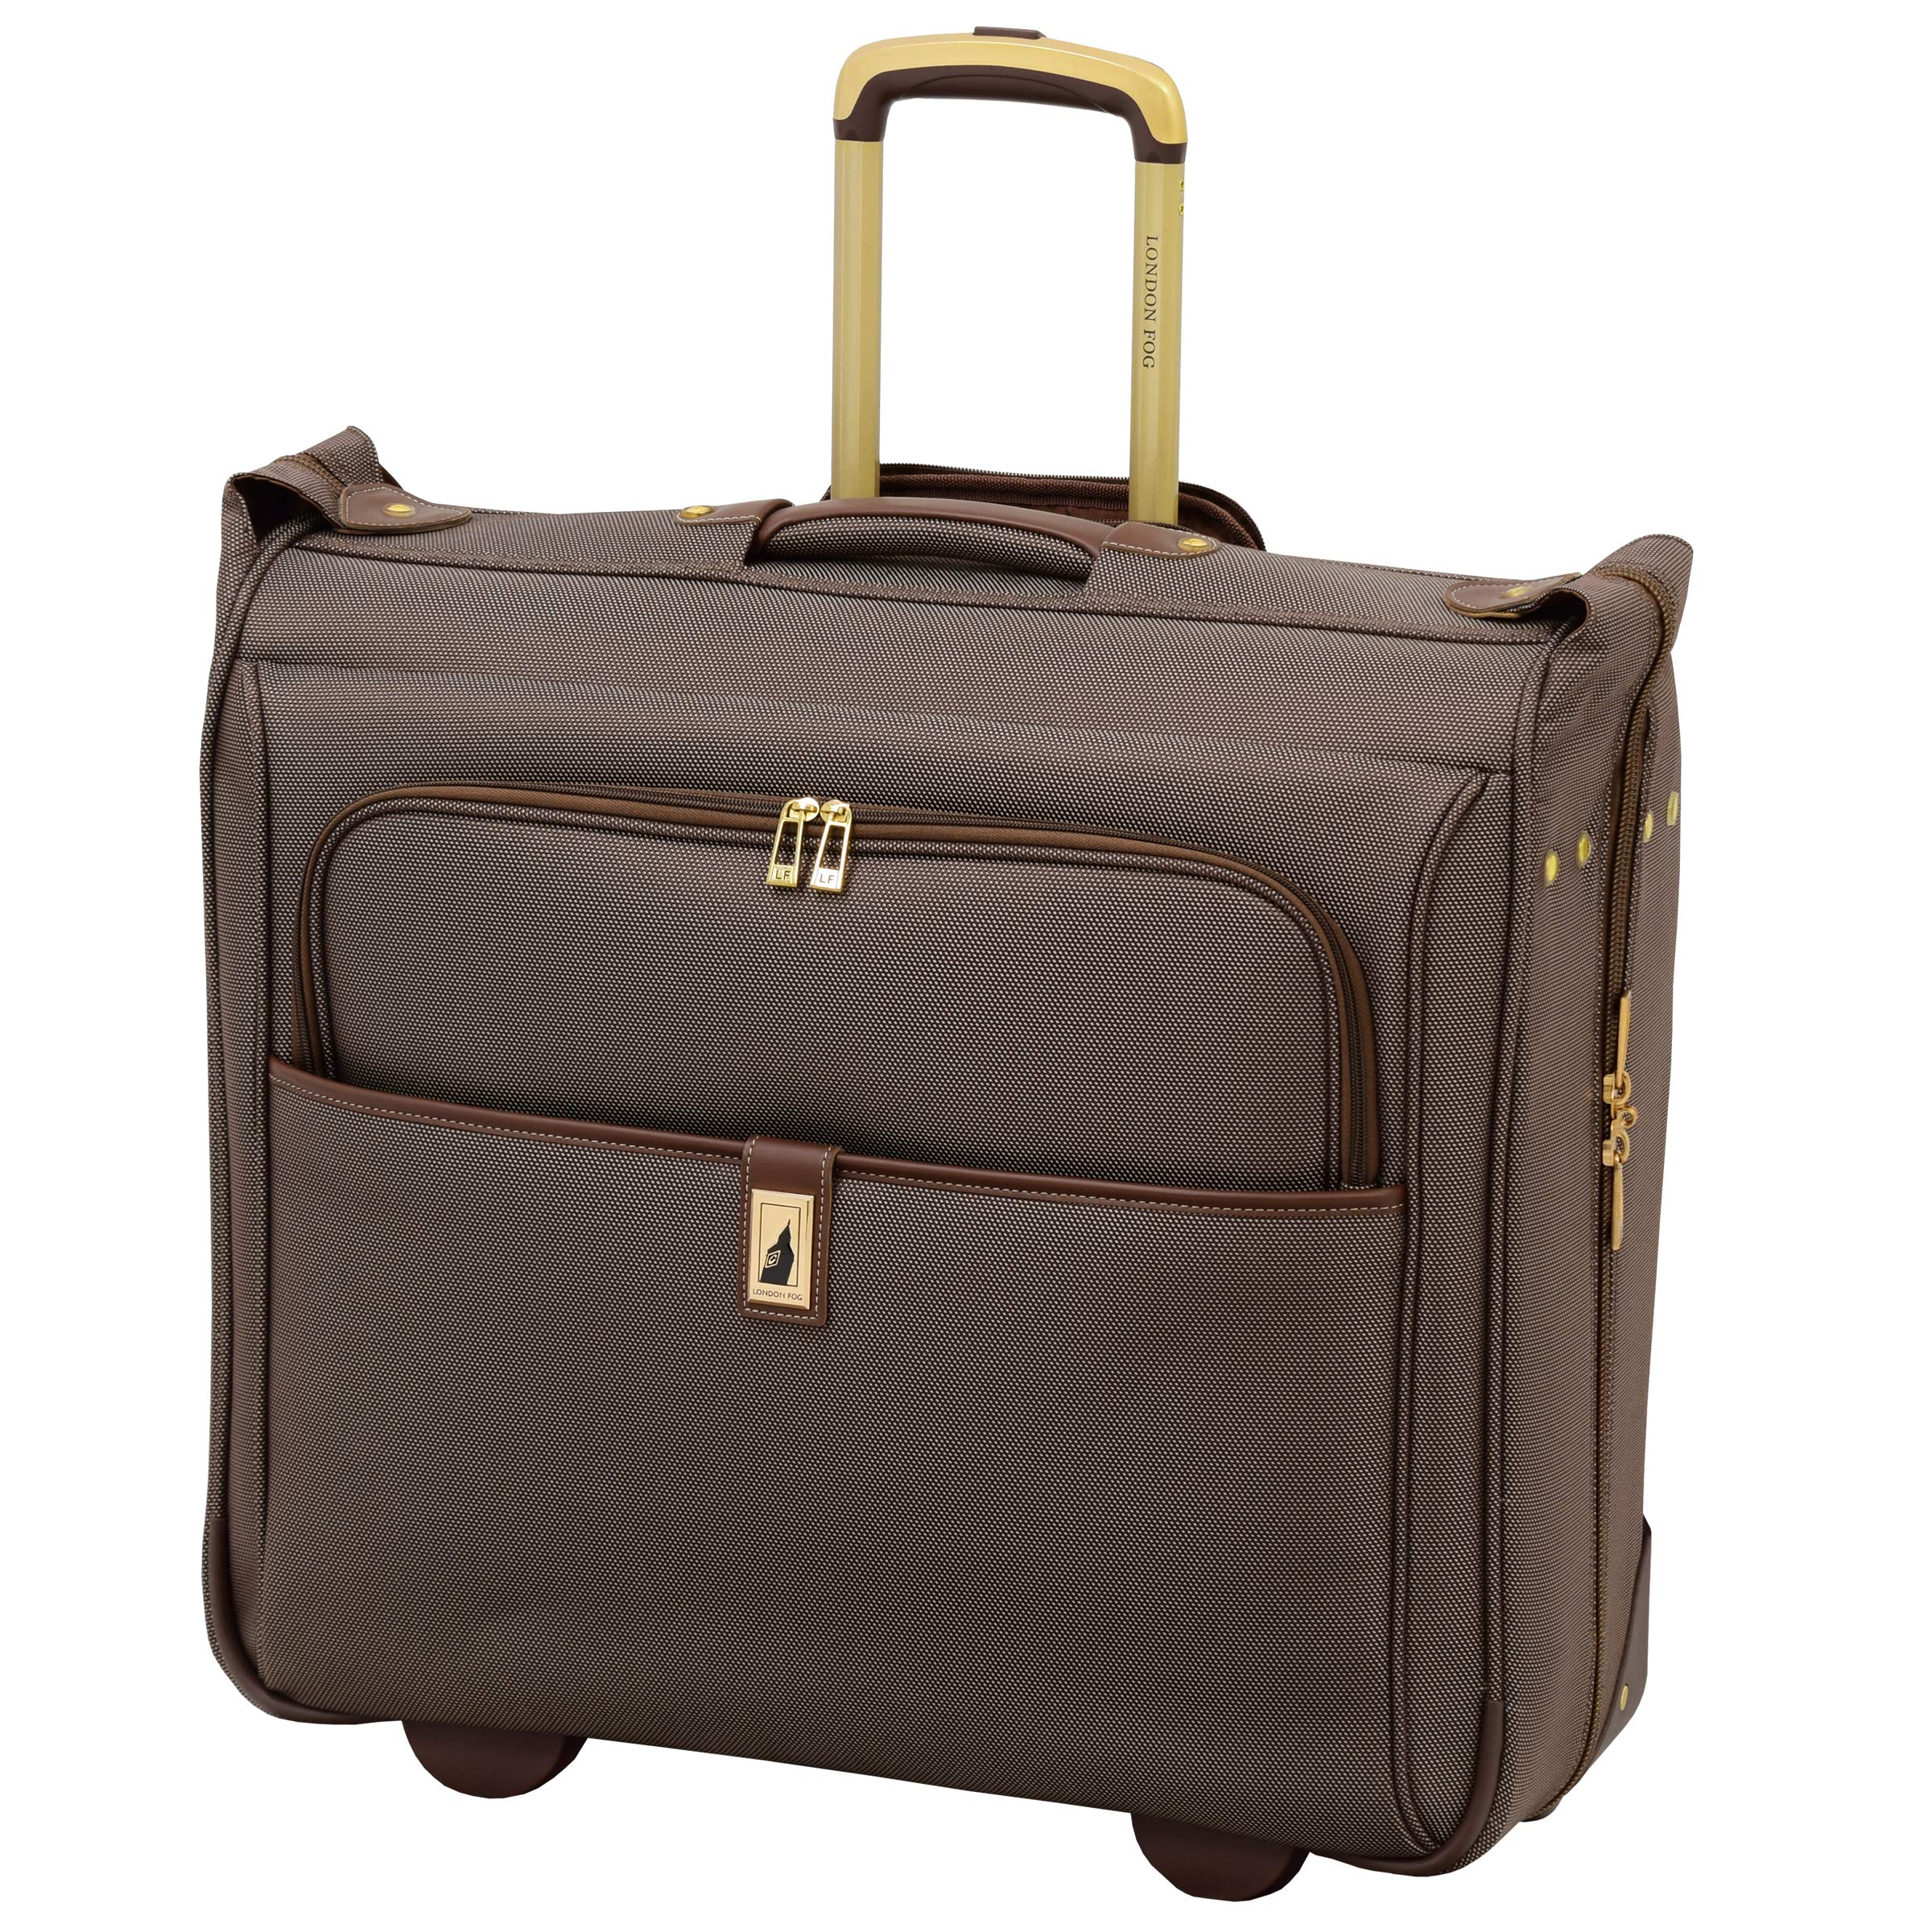 London Fog Kensington II 44'' Wheeled Garment Bag, Bronze by London Fog